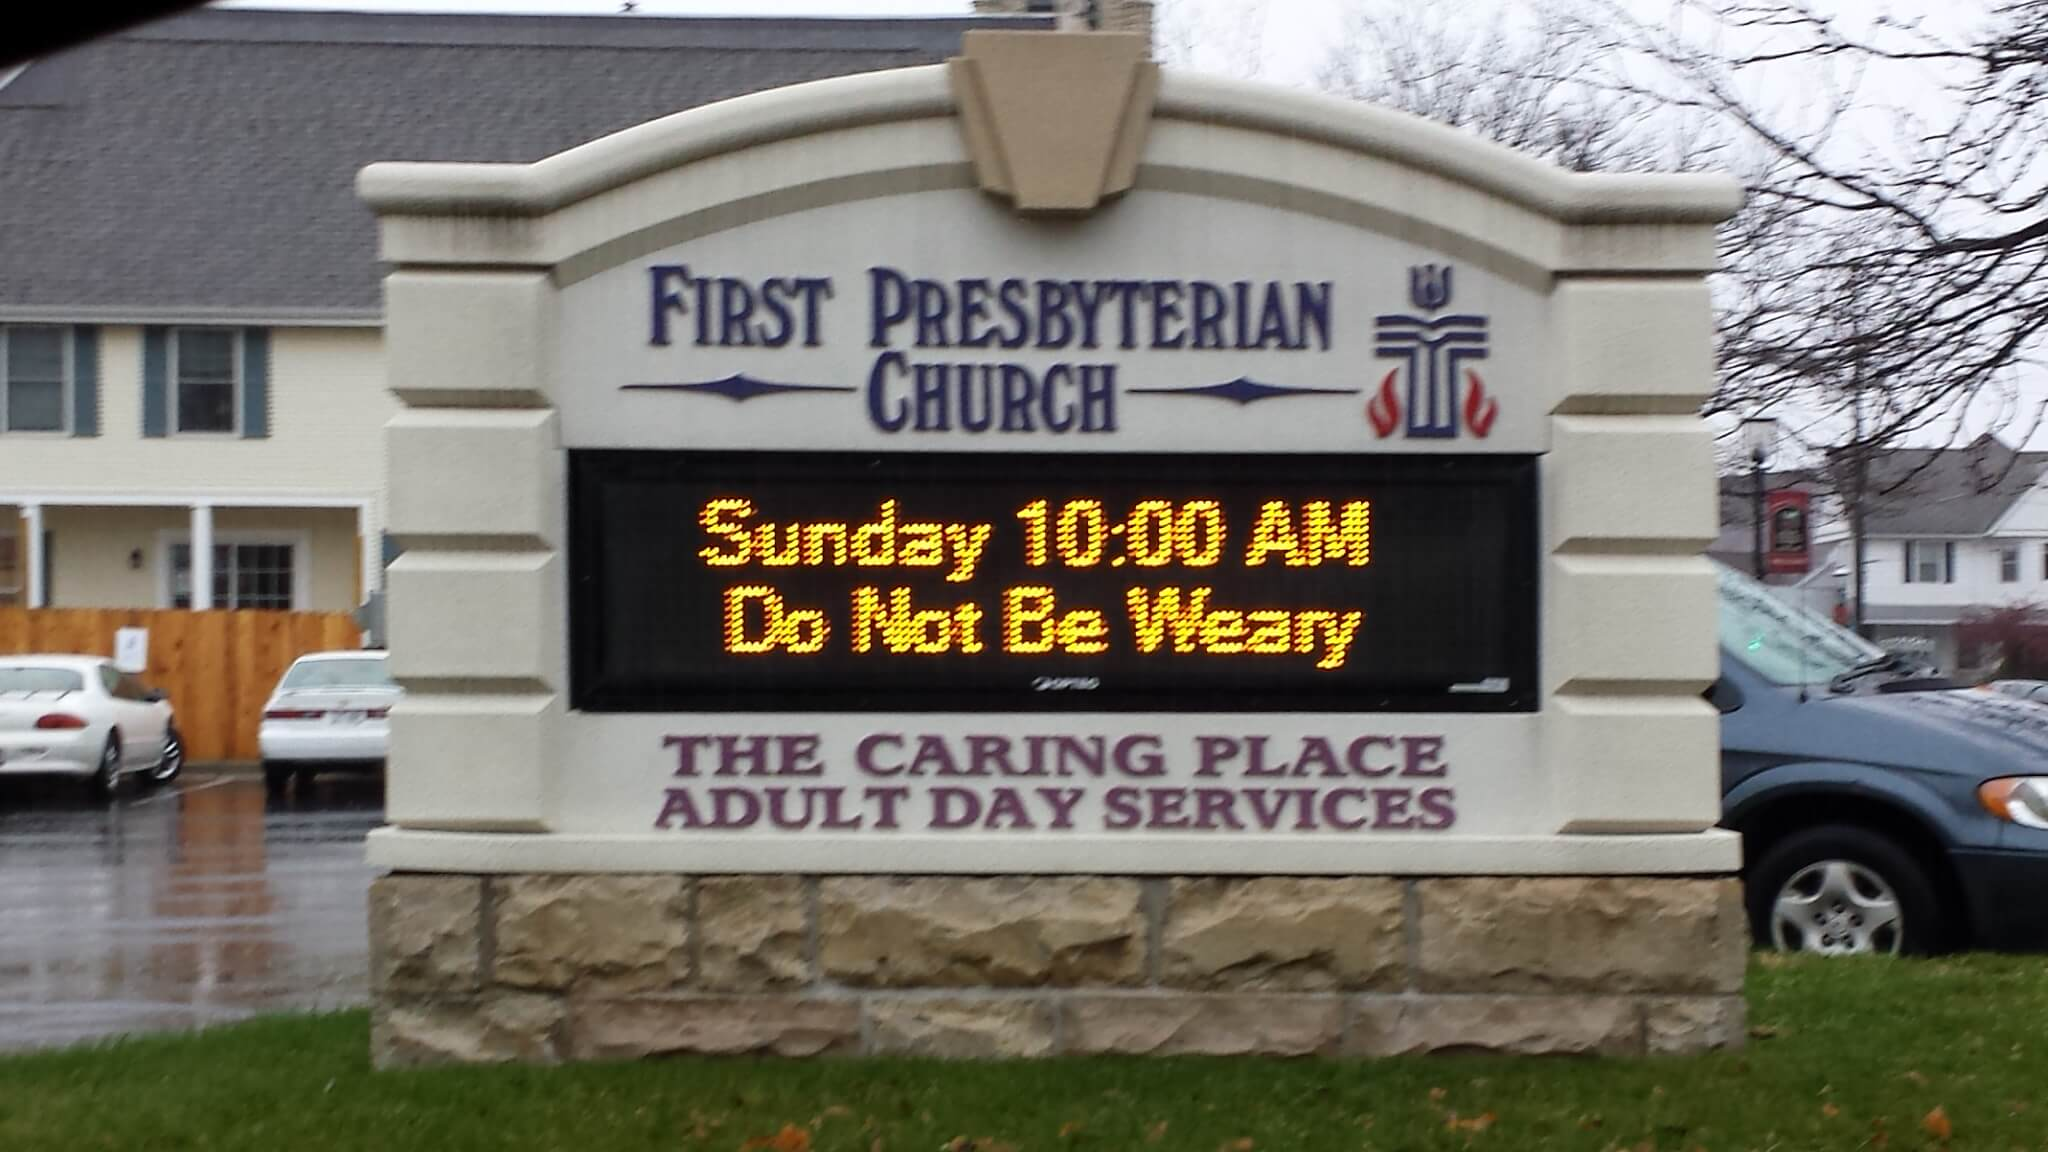 Outdoor LED Monument Sign with Changeable text for First Presbyterian Church